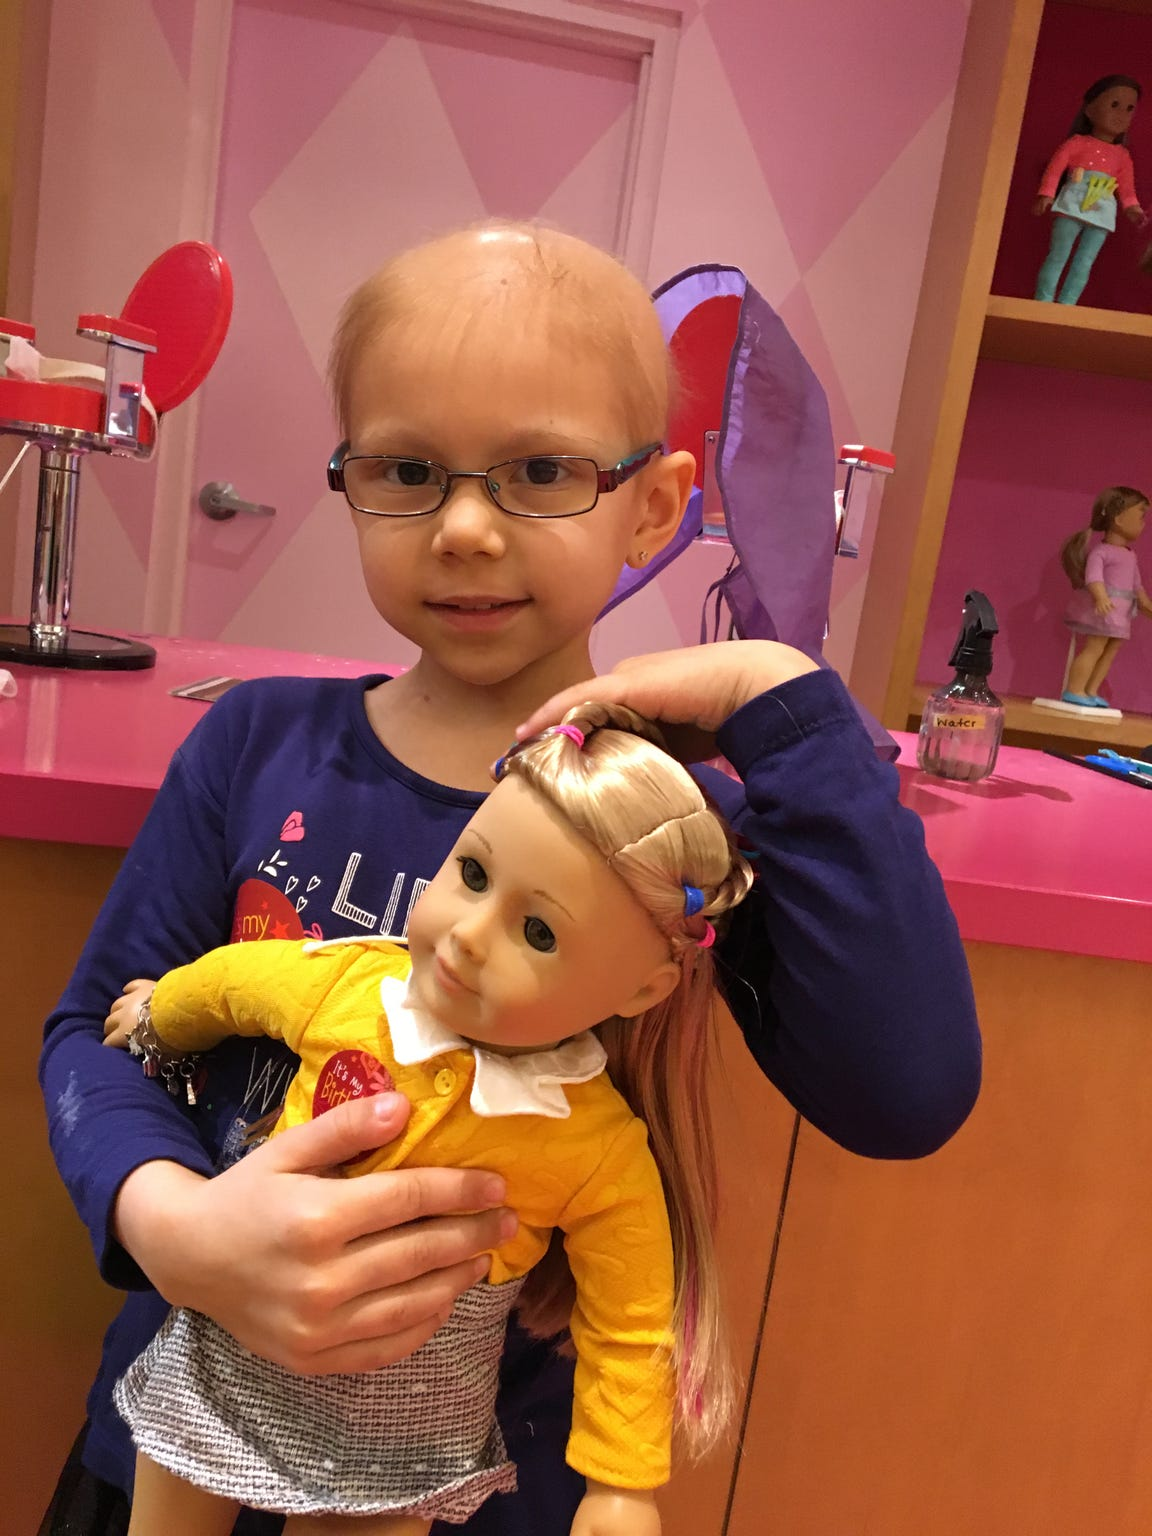 Rhyan Loos has undergone five cycles of chemotherapy to help shrink a tumor on her kidney. #RallyforRhyan, a movement to raise awareness and funds for pediatric cancer research, has garnered national attention.